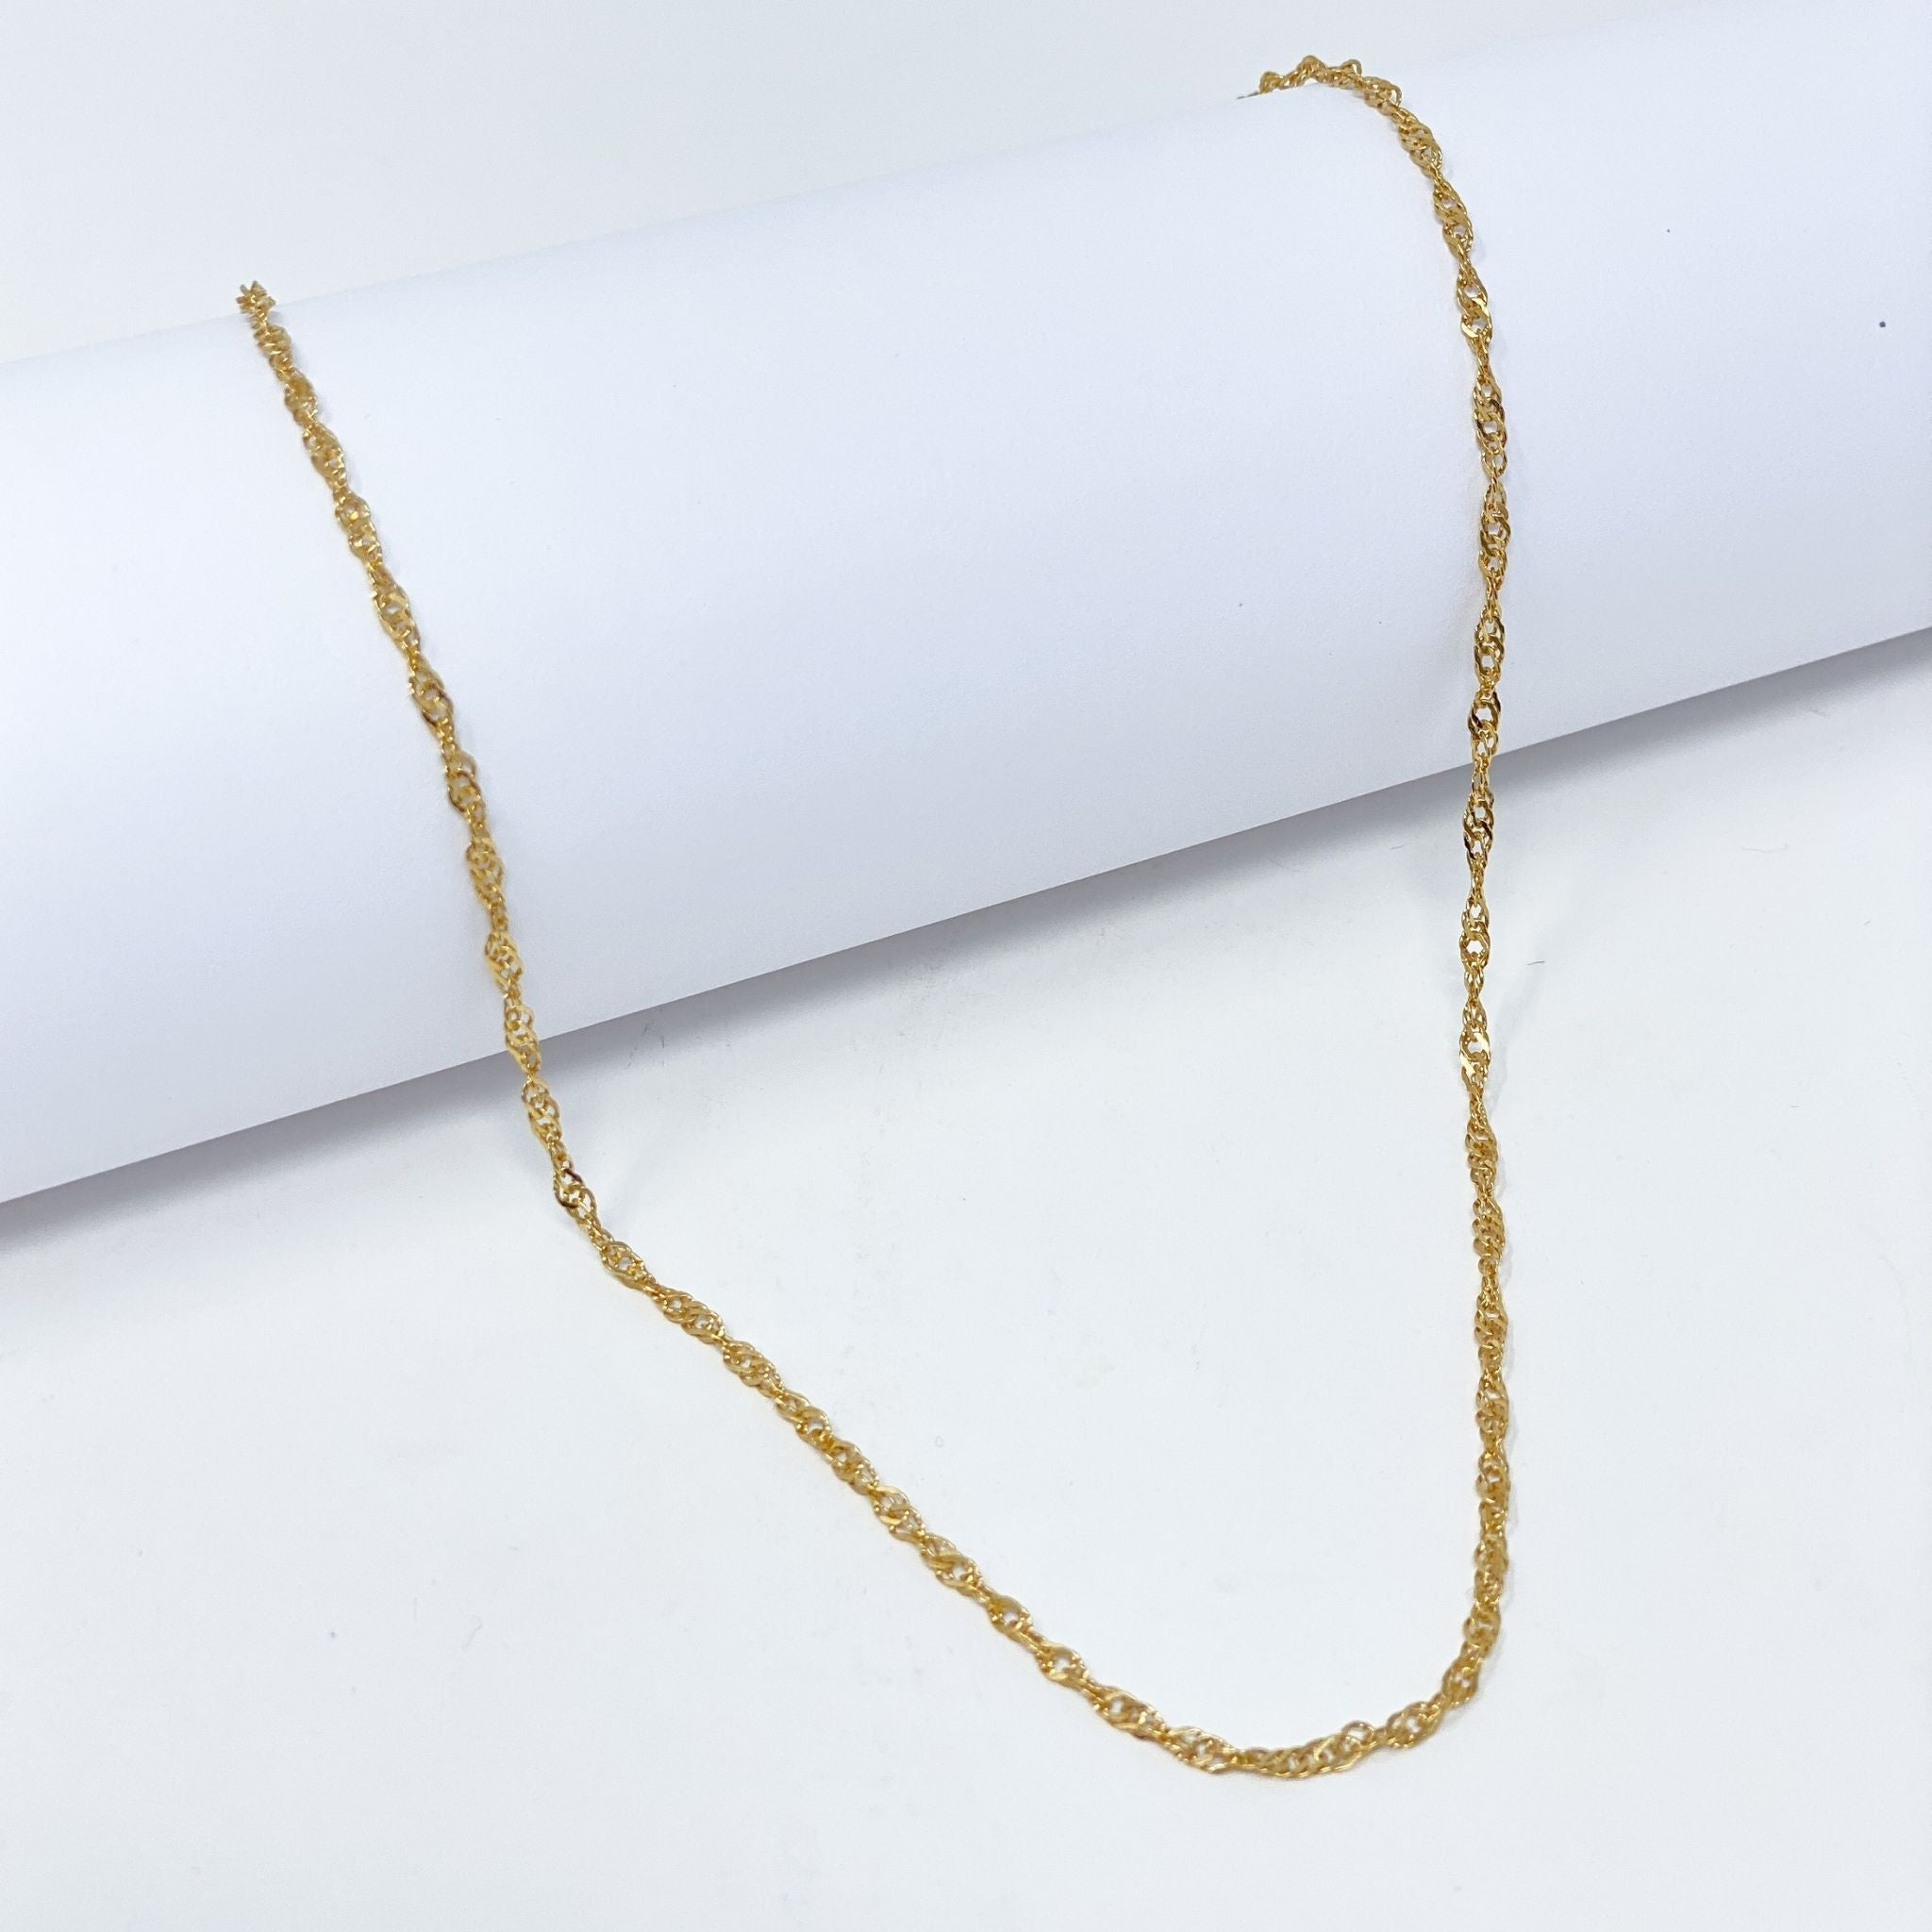 Interlace Chain Necklace